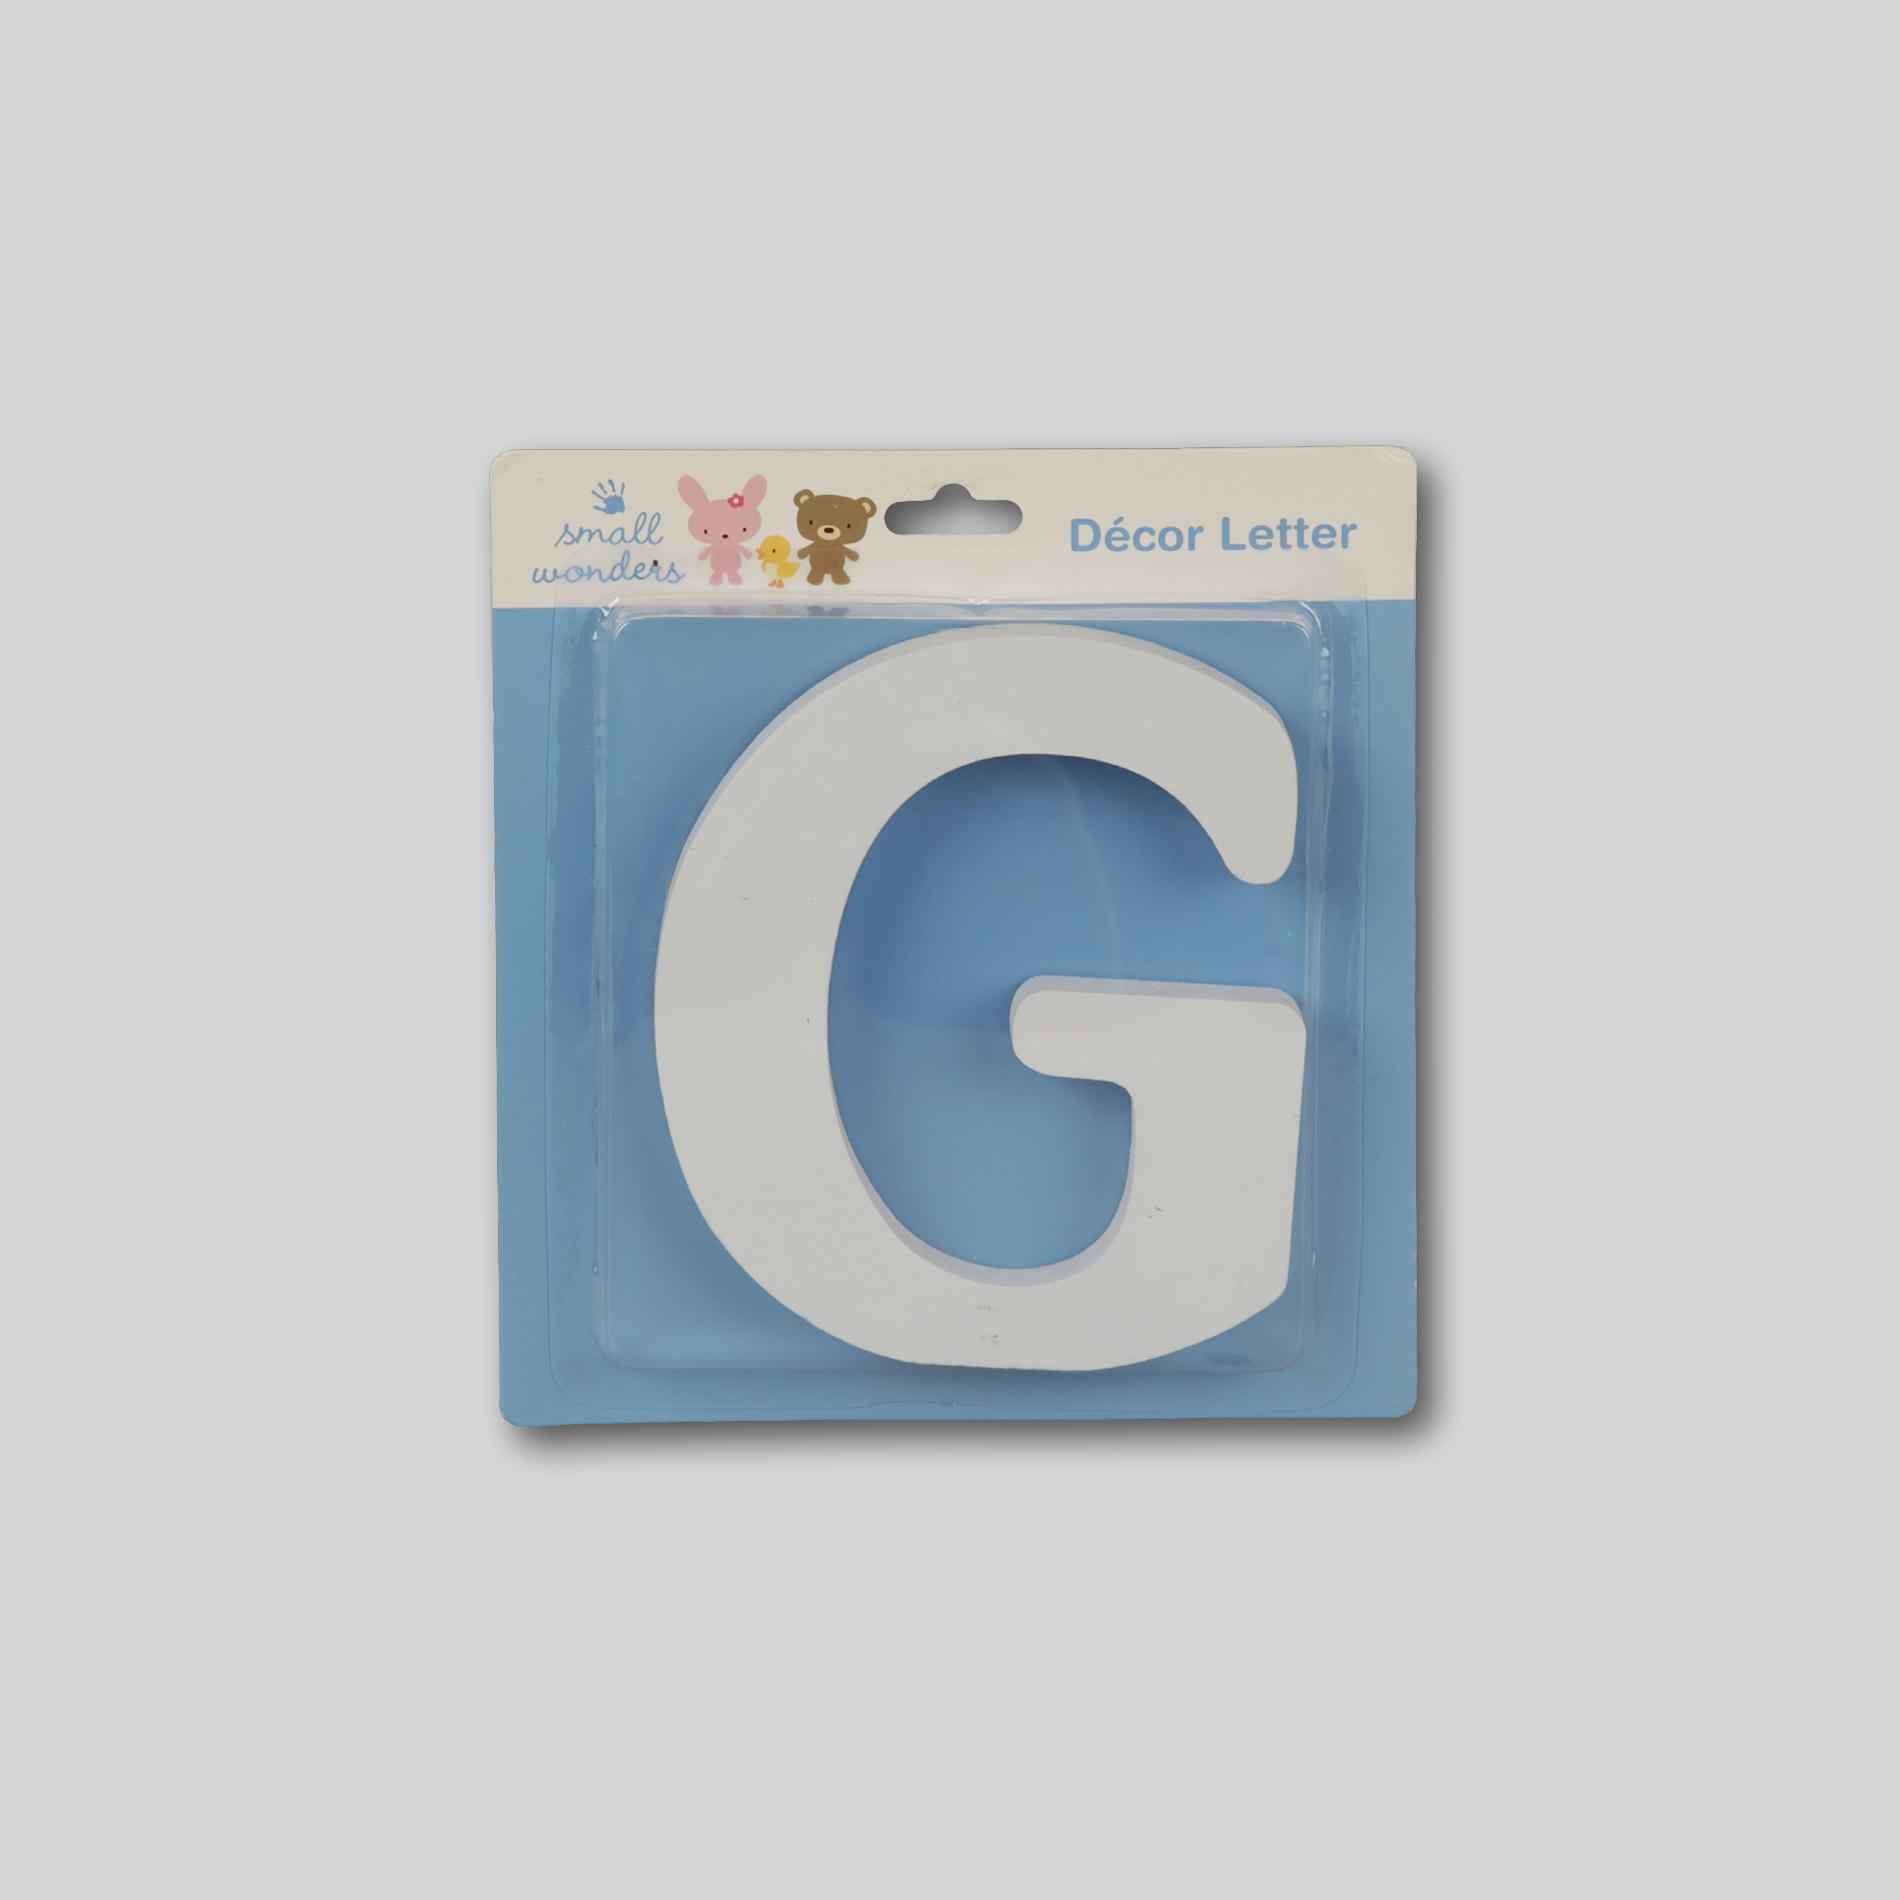 Small Wonders Wooden Letter Wall Decor - Letter G